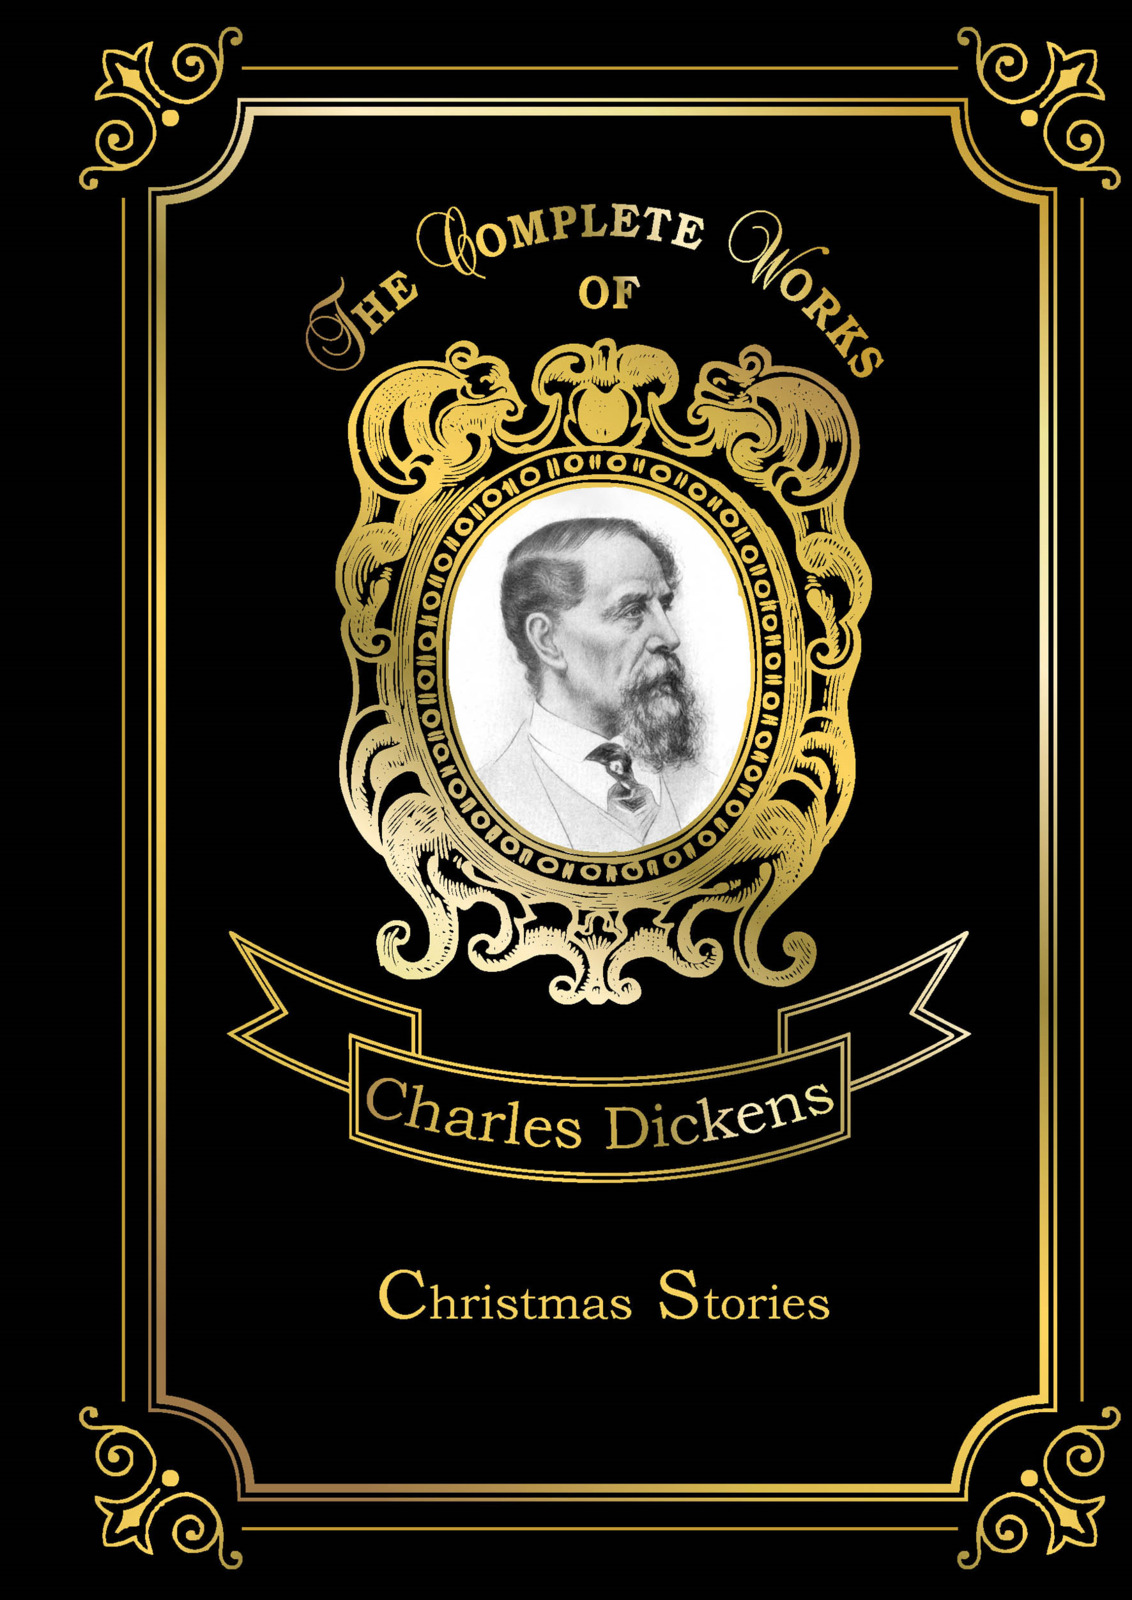 Charles Dickens Christmas Stories gasquet francis aidan the eve of the reformation